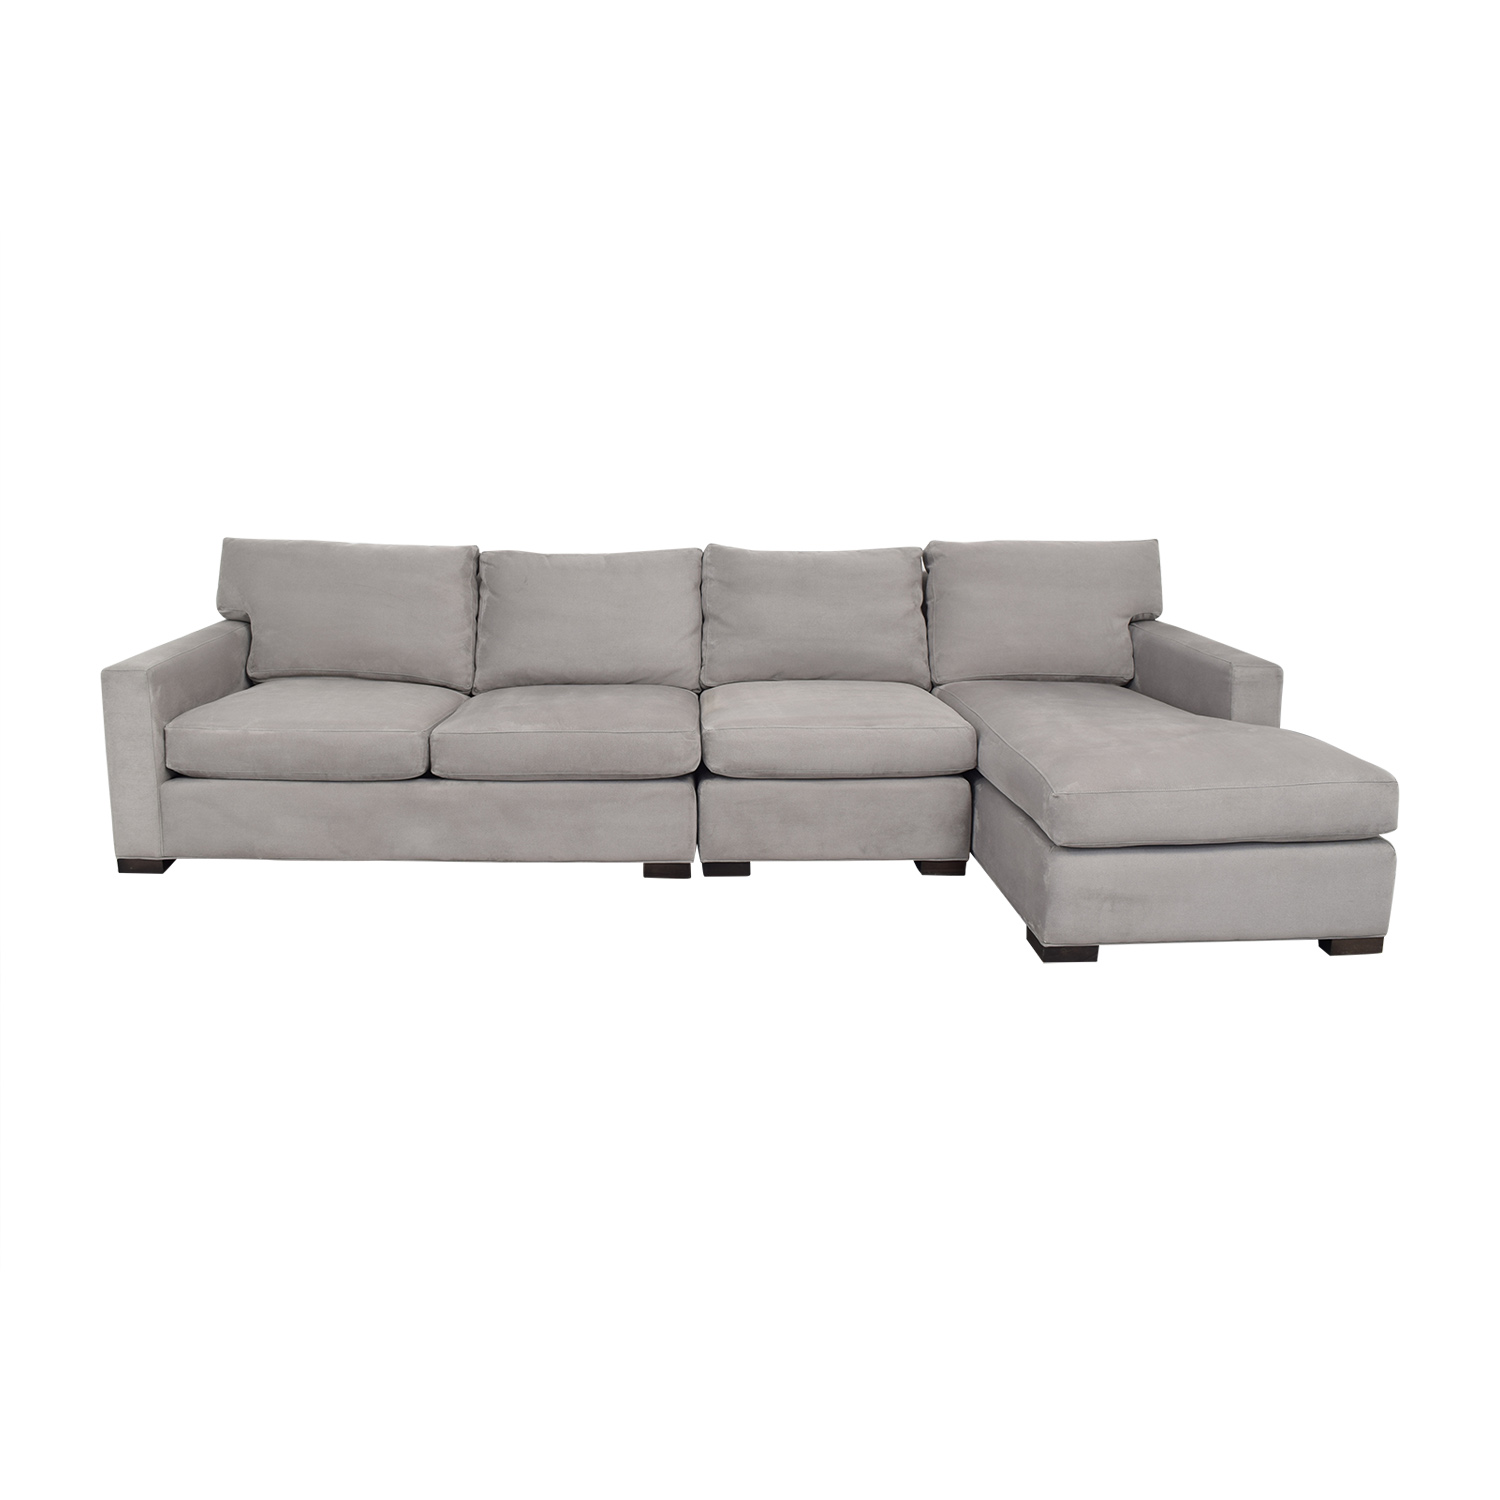 57% OFF - Crate & Barrel Crate & Barrel Axis II Sectional Sofa with Chaise  / Sofas